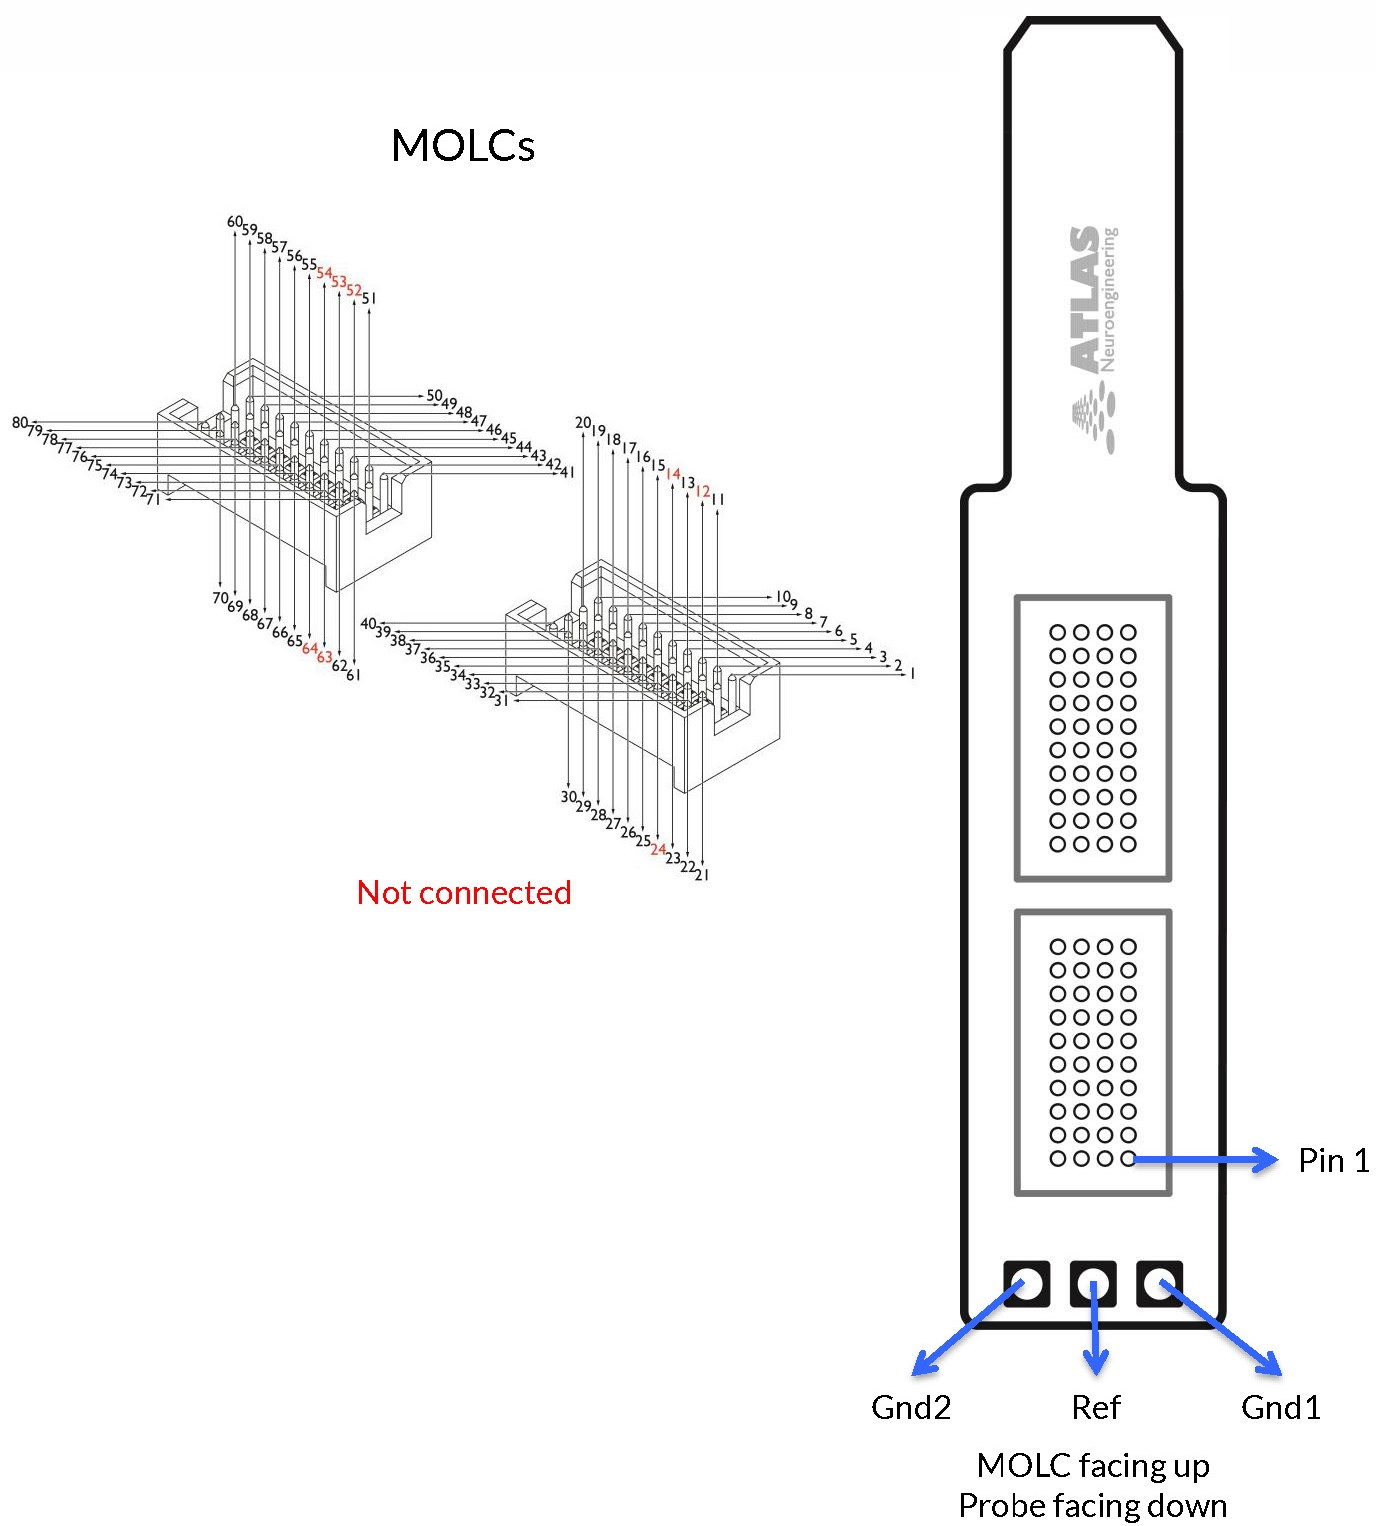 64-channel acute, MOLC